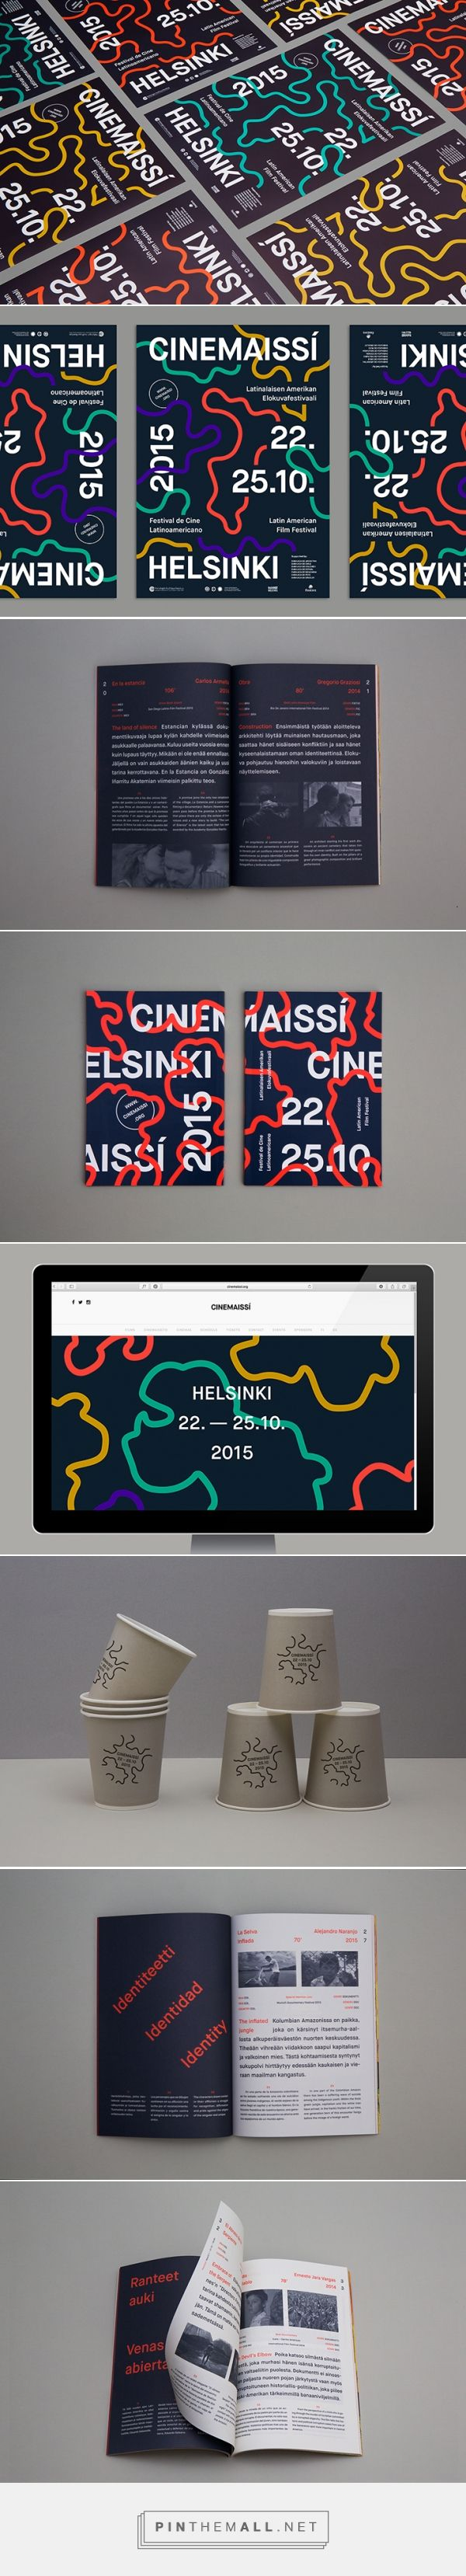 It's Nice That | Simple, adaptable Helsinki film festival identity by Pol Solsona - created via http://pinthemall.net